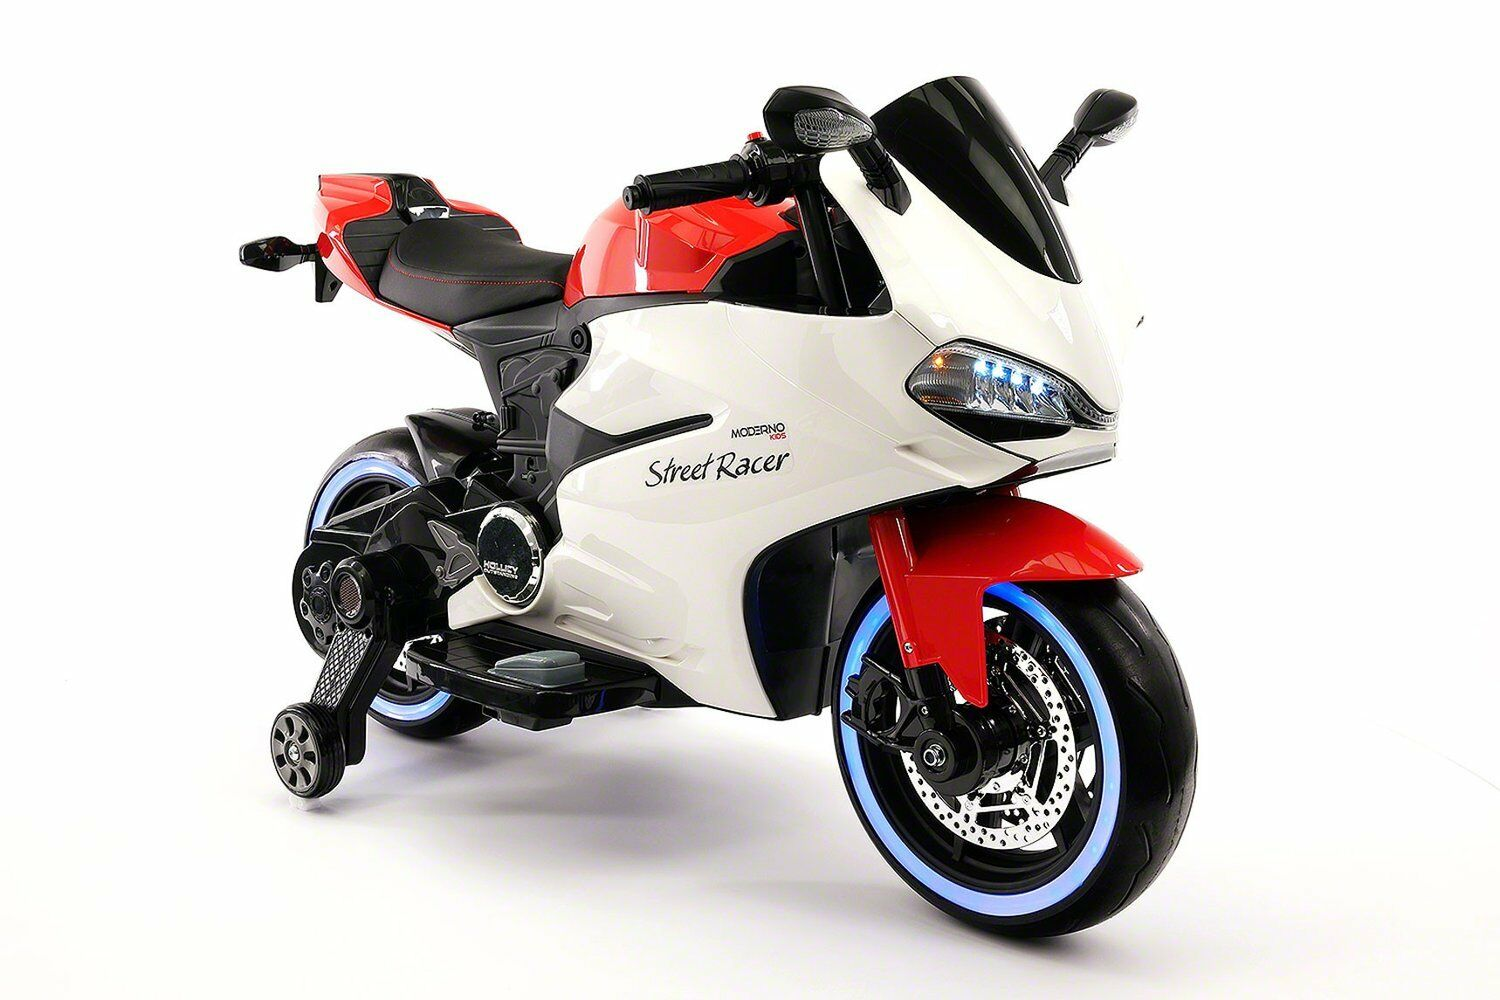 NEW DUCATI MOTORCYCLES STYLE 12V ELECTRIC KIDS KIDS KIDS RIDE-ON MOTORCYCLE TOY 2019 MODEL 07ec1f